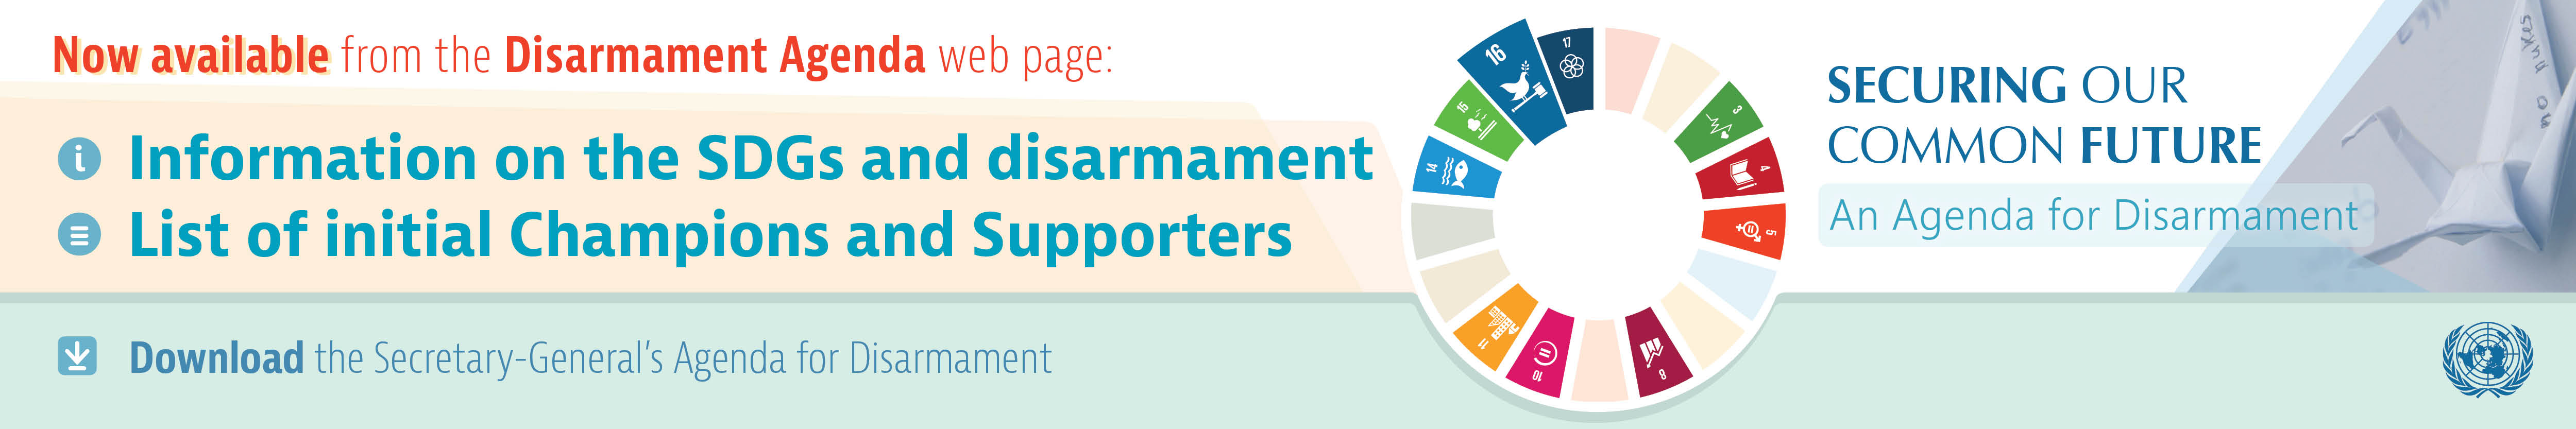 Now available from the Disarmament Agenda web page: